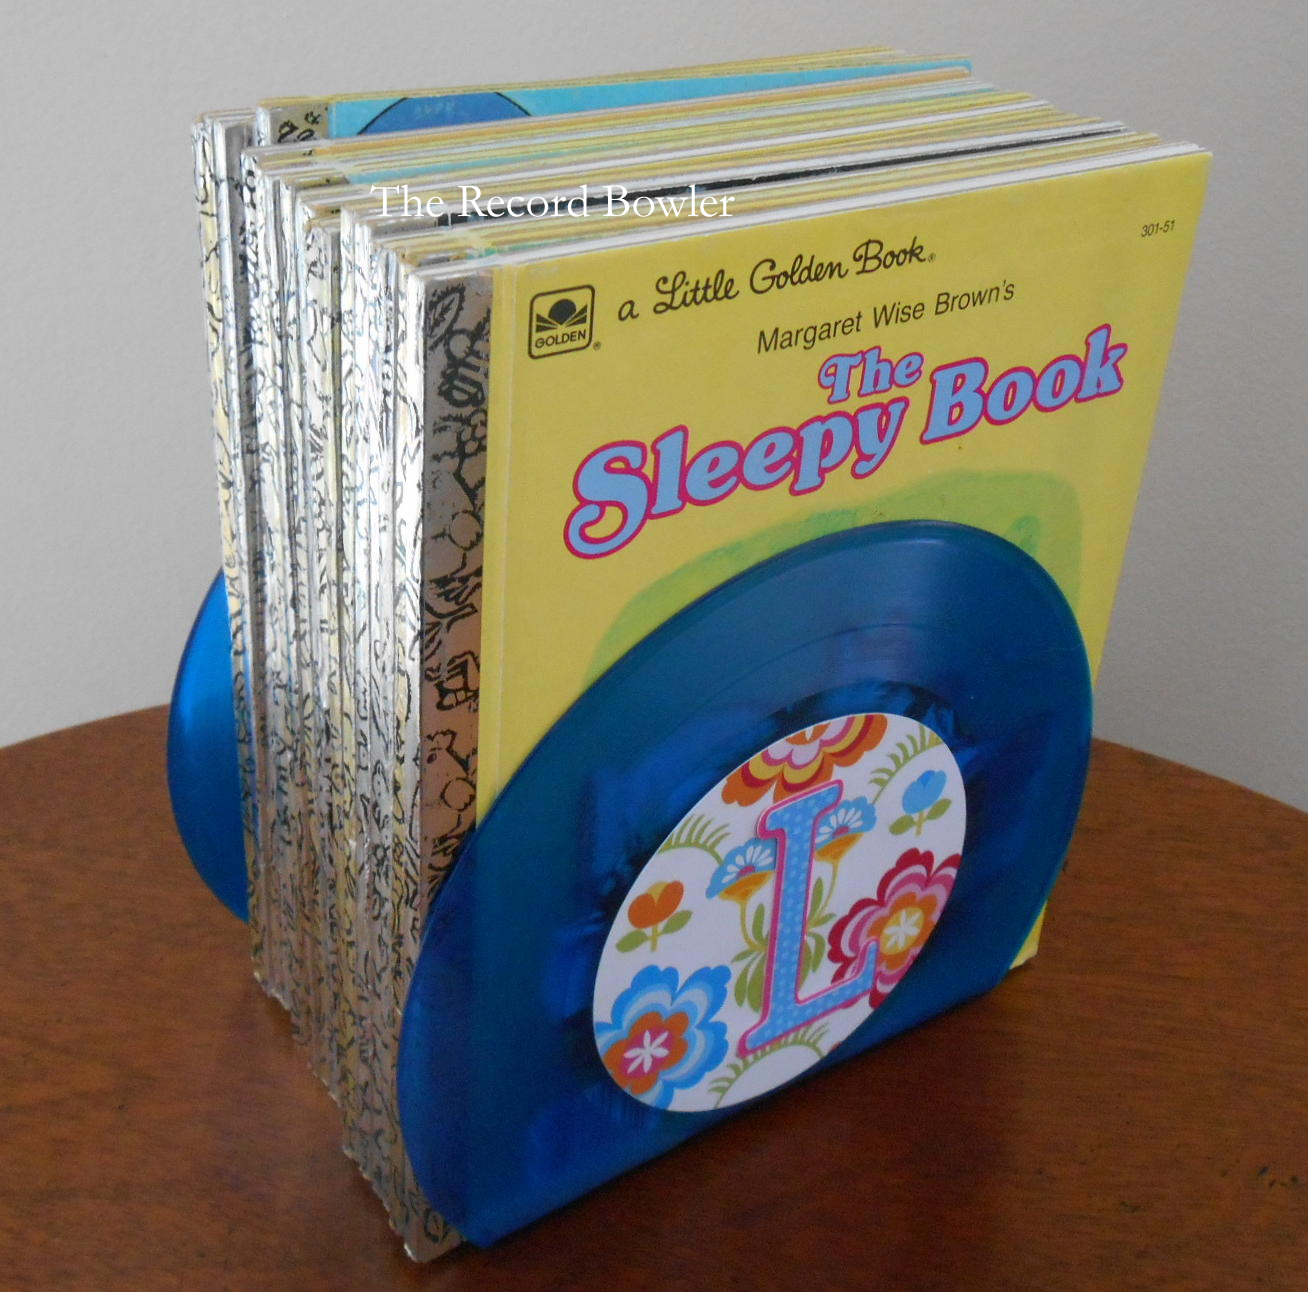 blue colored record book ends